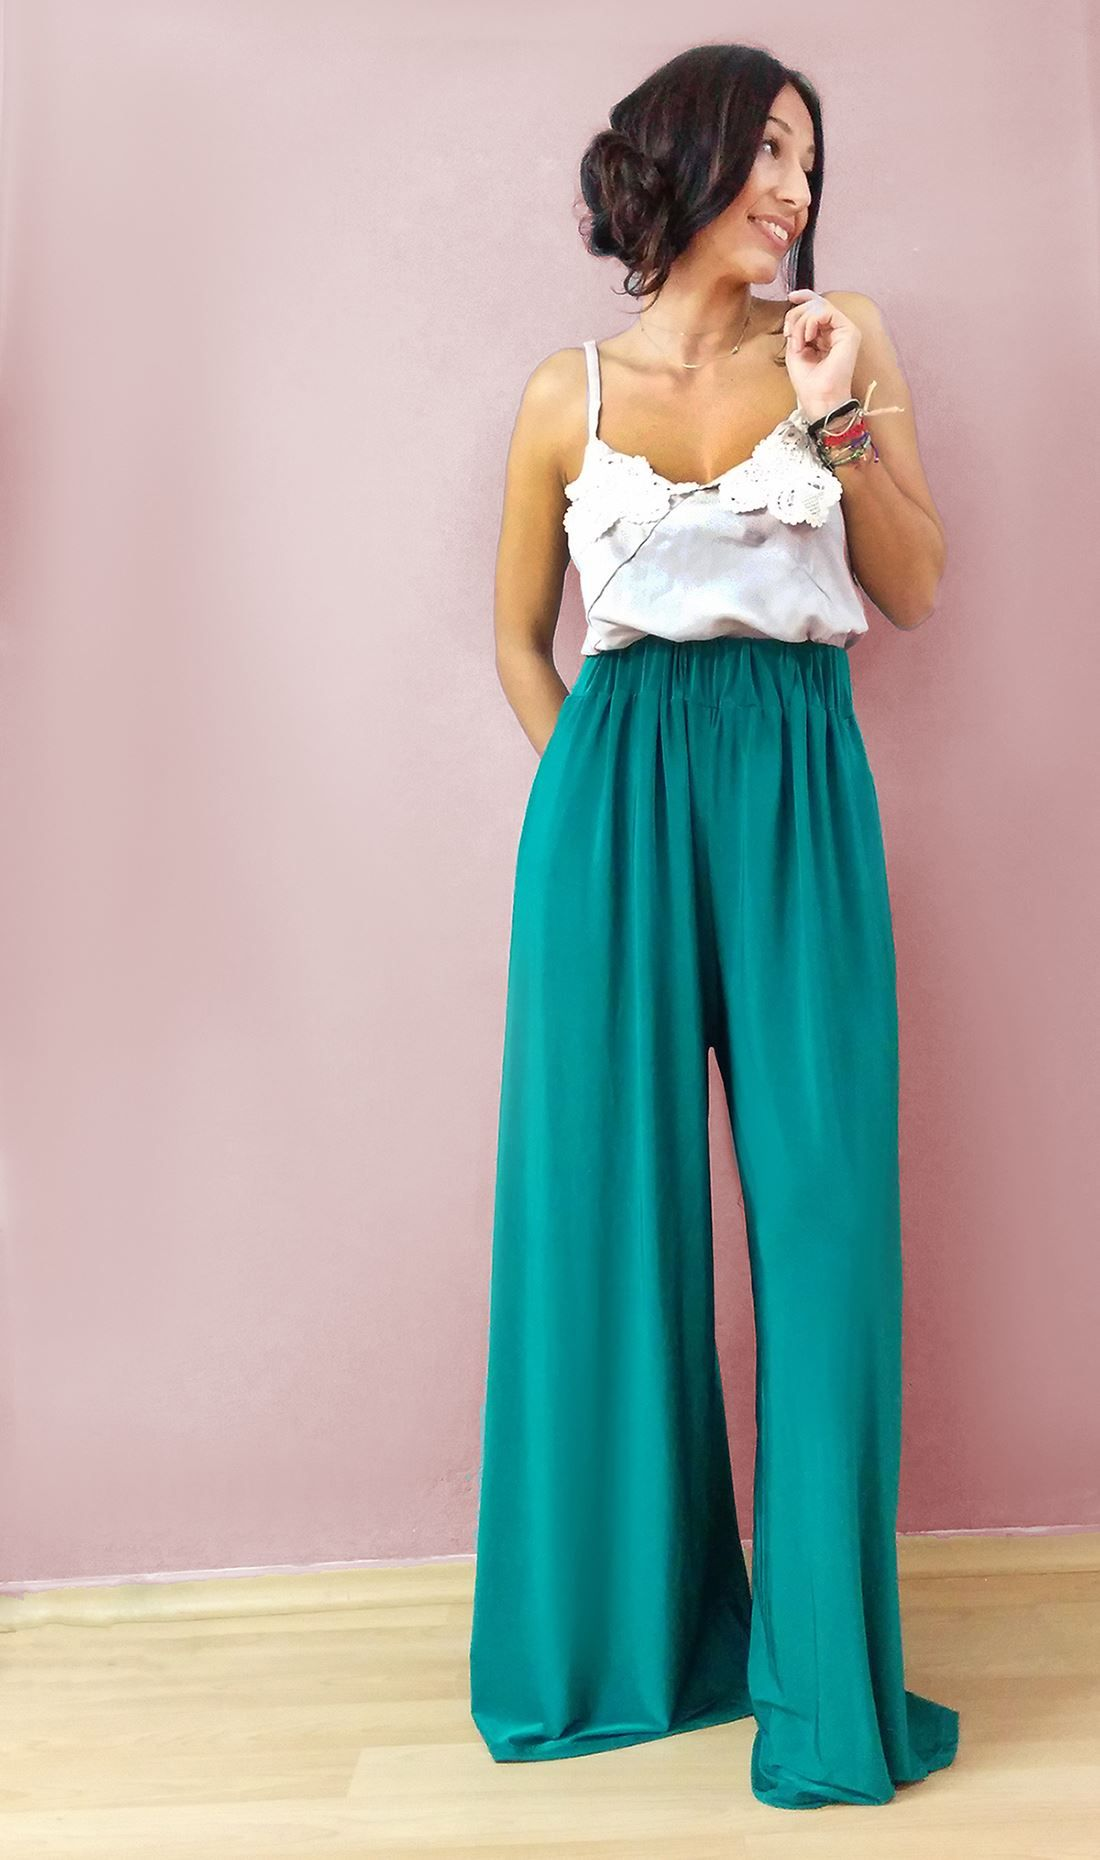 You look super CUTE when you  SMILE!!!!!   CEZZANE top & ALADIN trousers  SPECIAL OFFER ** N O W 130€ BOTH ! ! ! ! ** — with Eleni Malliou. Tags: madame shou shou